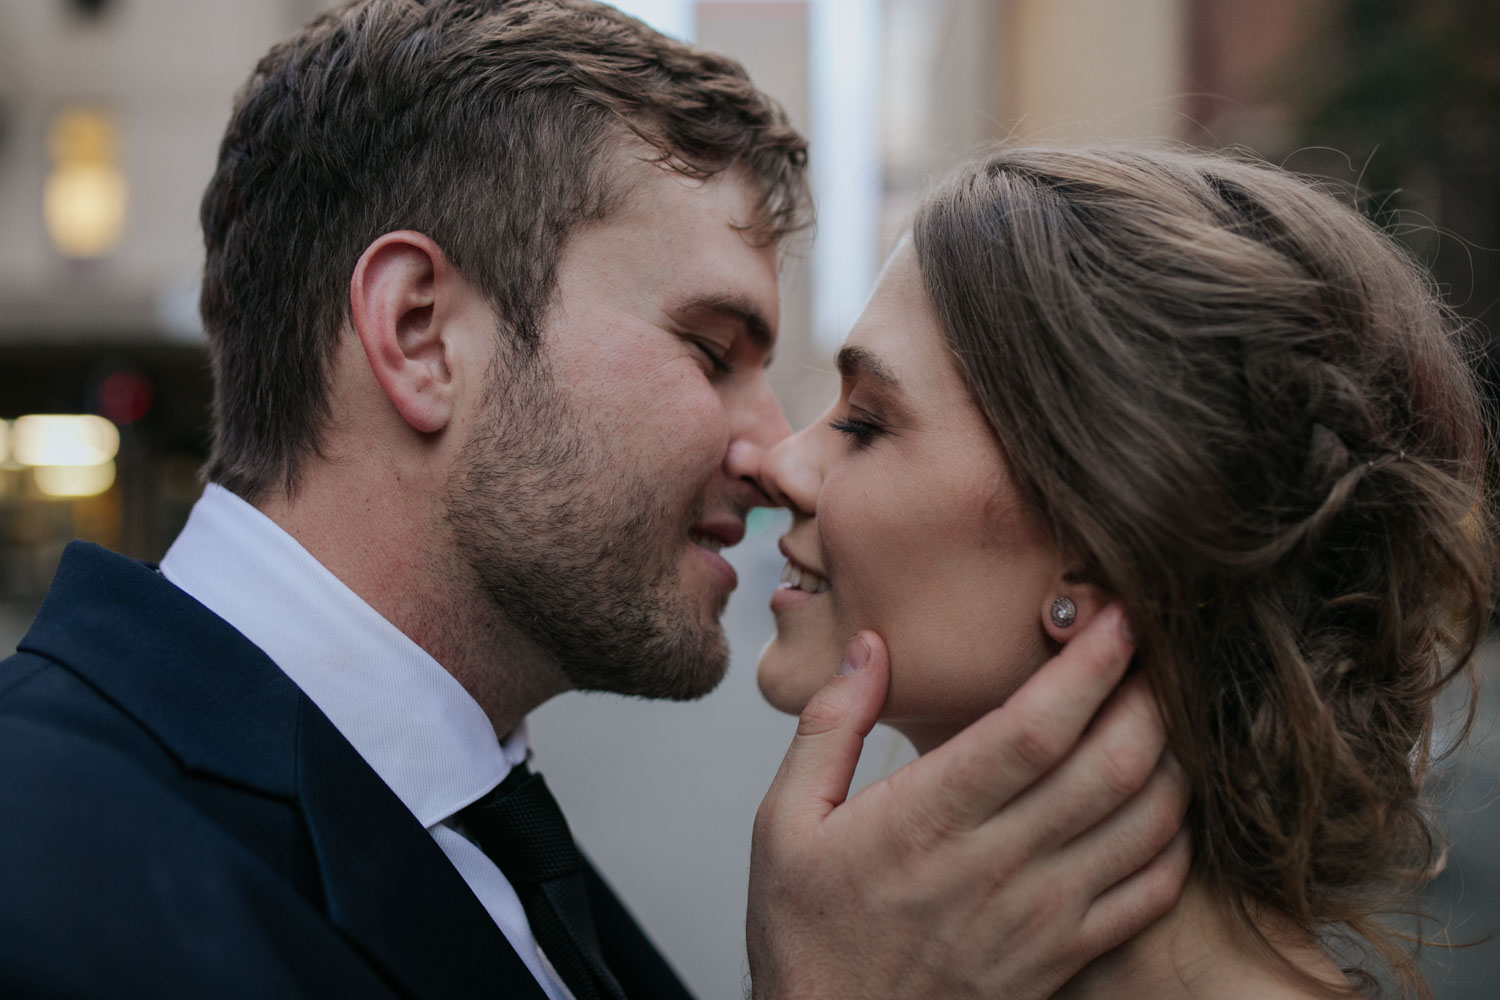 Before The First Kiss Grooms Holds Bride's Face